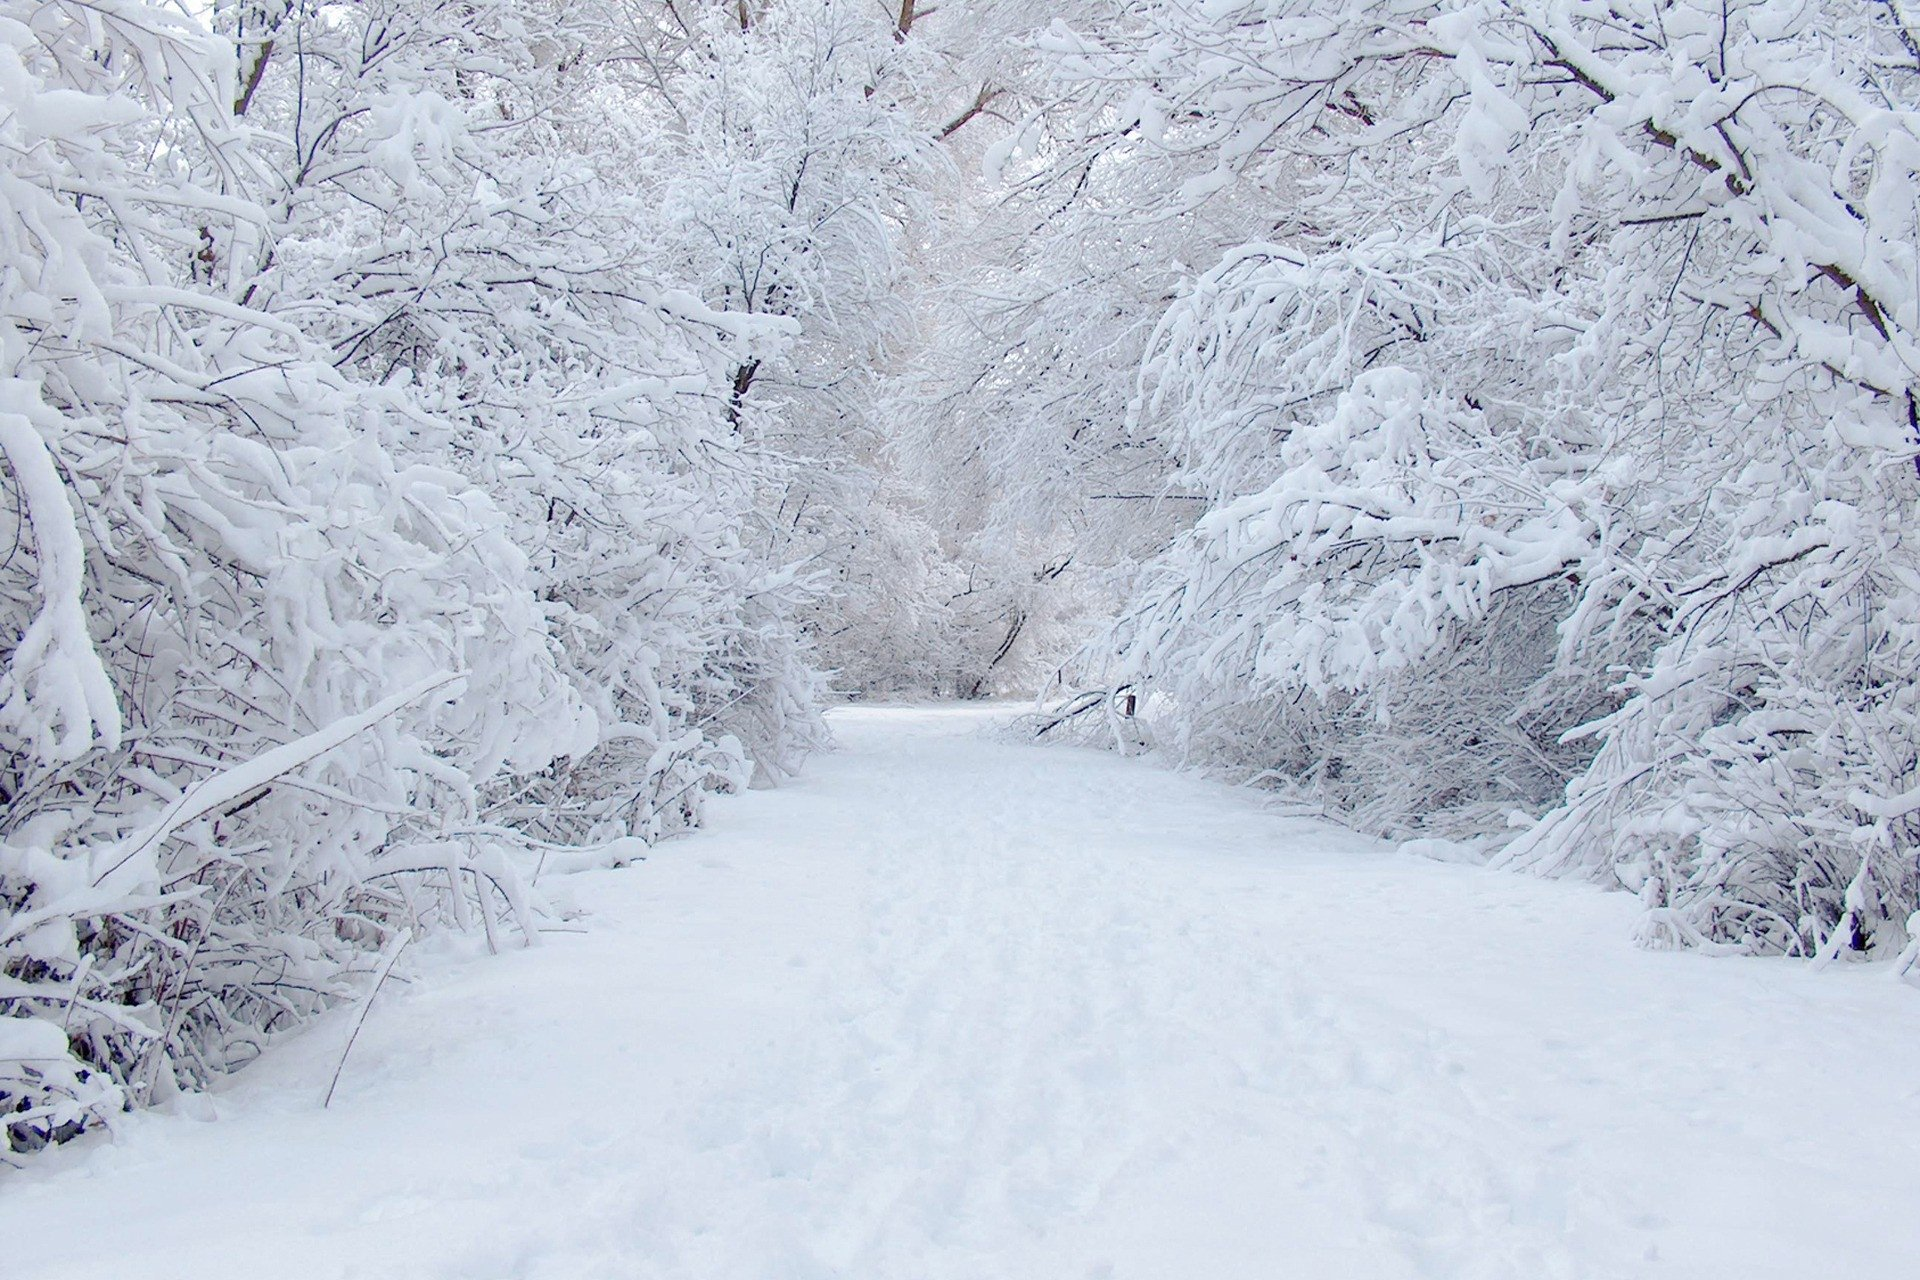 Earth - Winter  Scenic Earth Snow Tree Path Road White Wallpaper